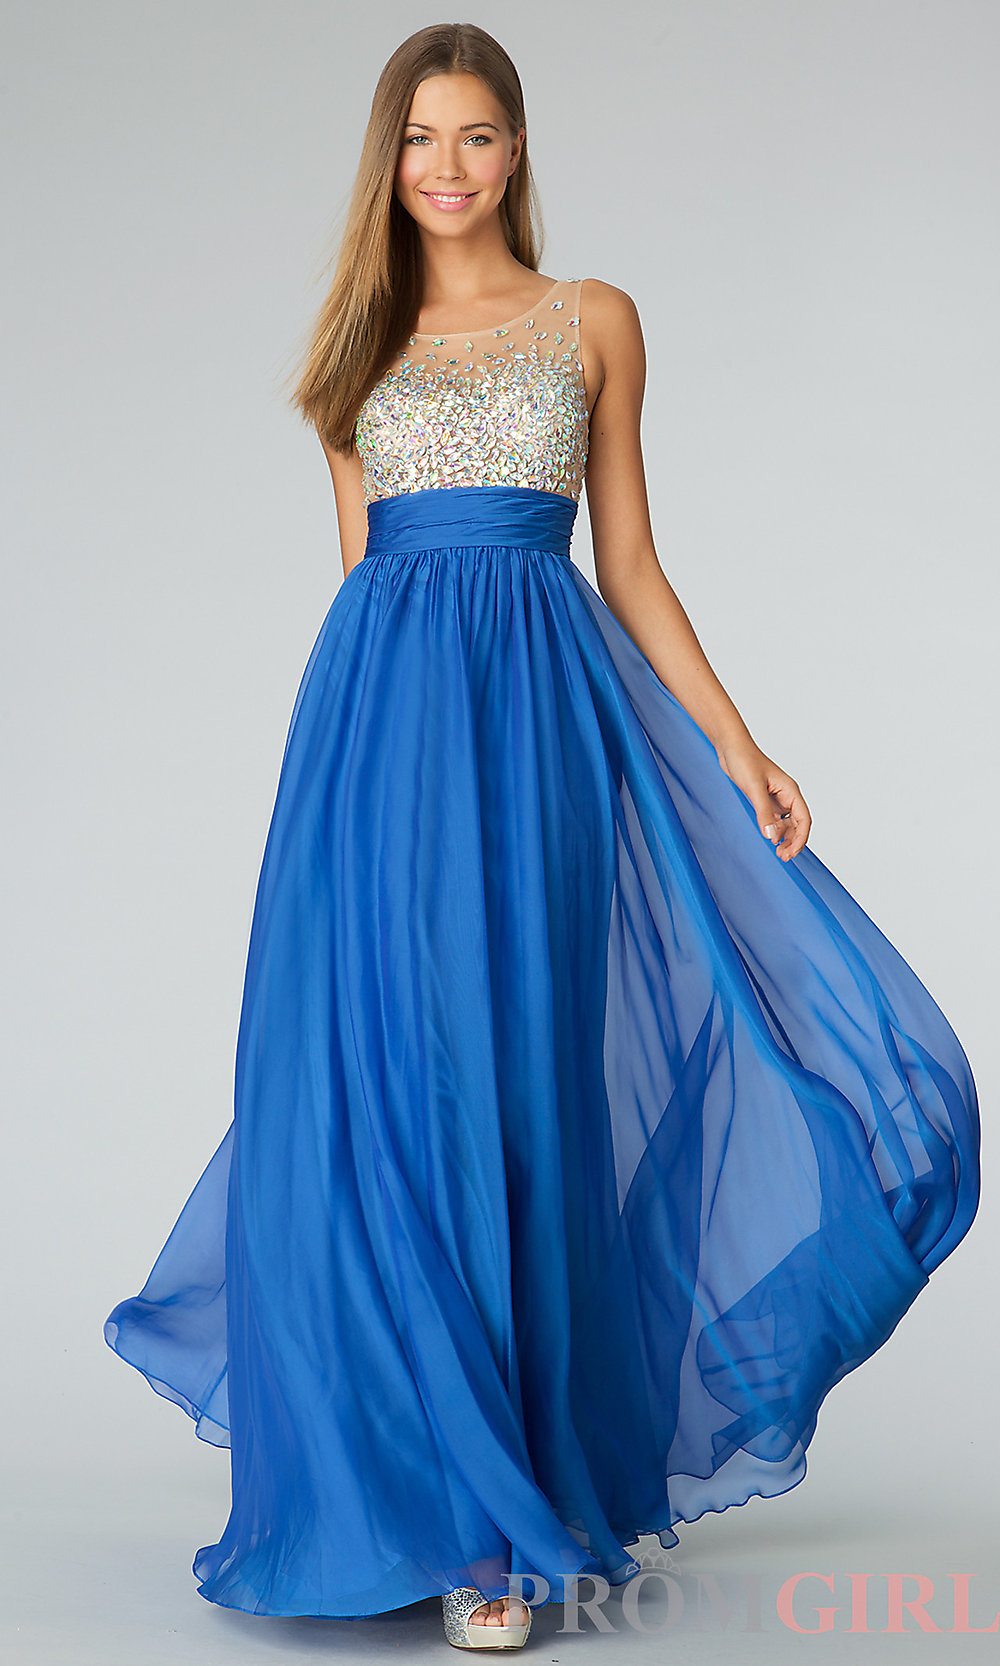 List Of Popular Prom Dress Designers